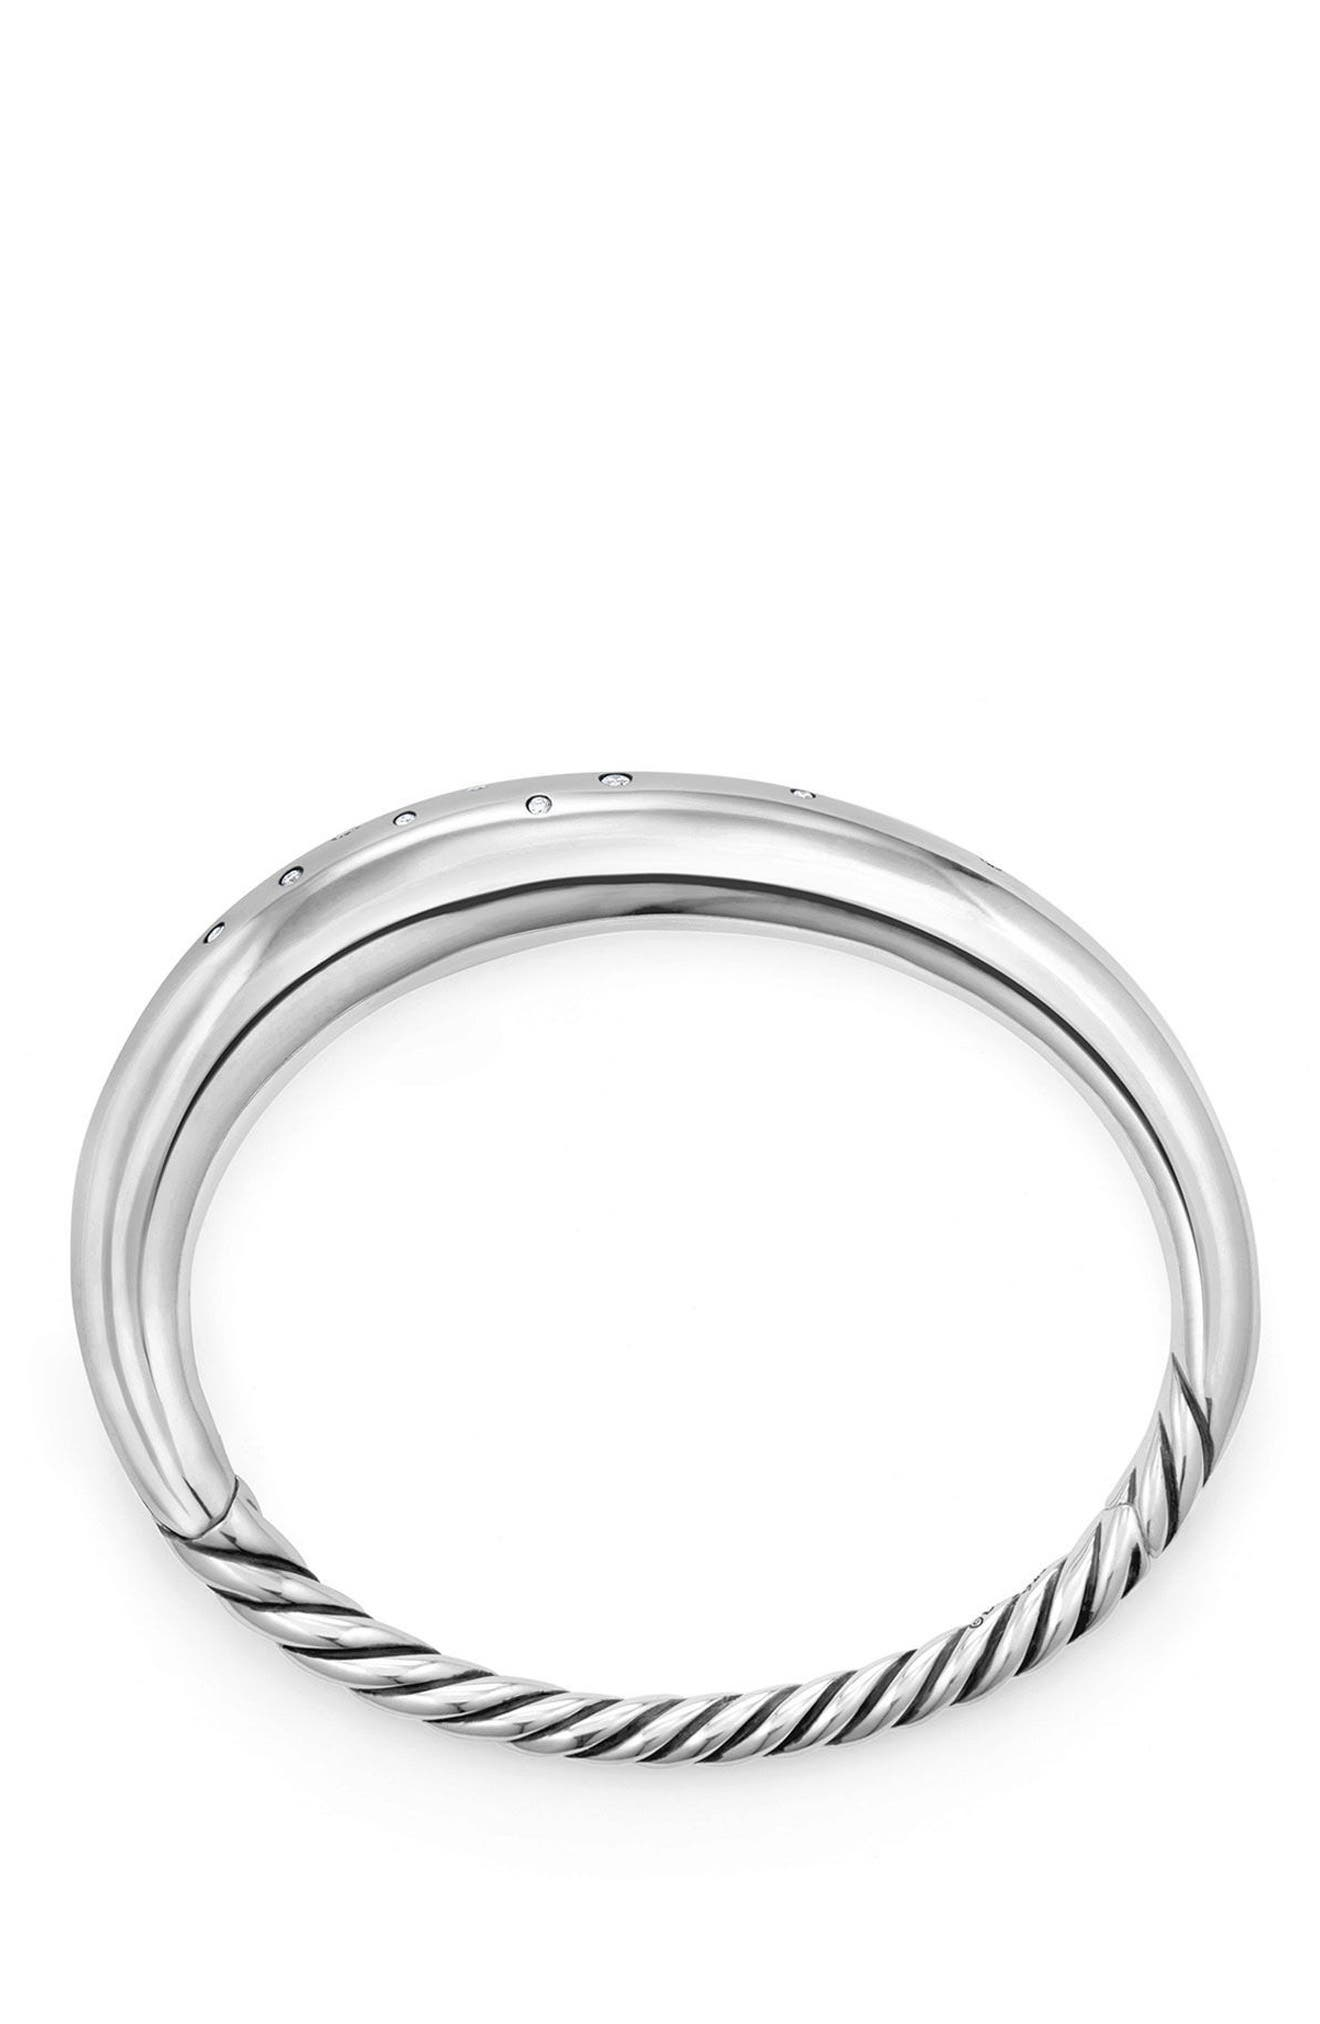 Pure Form Smooth Bracelet with Diamonds, 9.5mm,                             Alternate thumbnail 2, color,                             SILVER